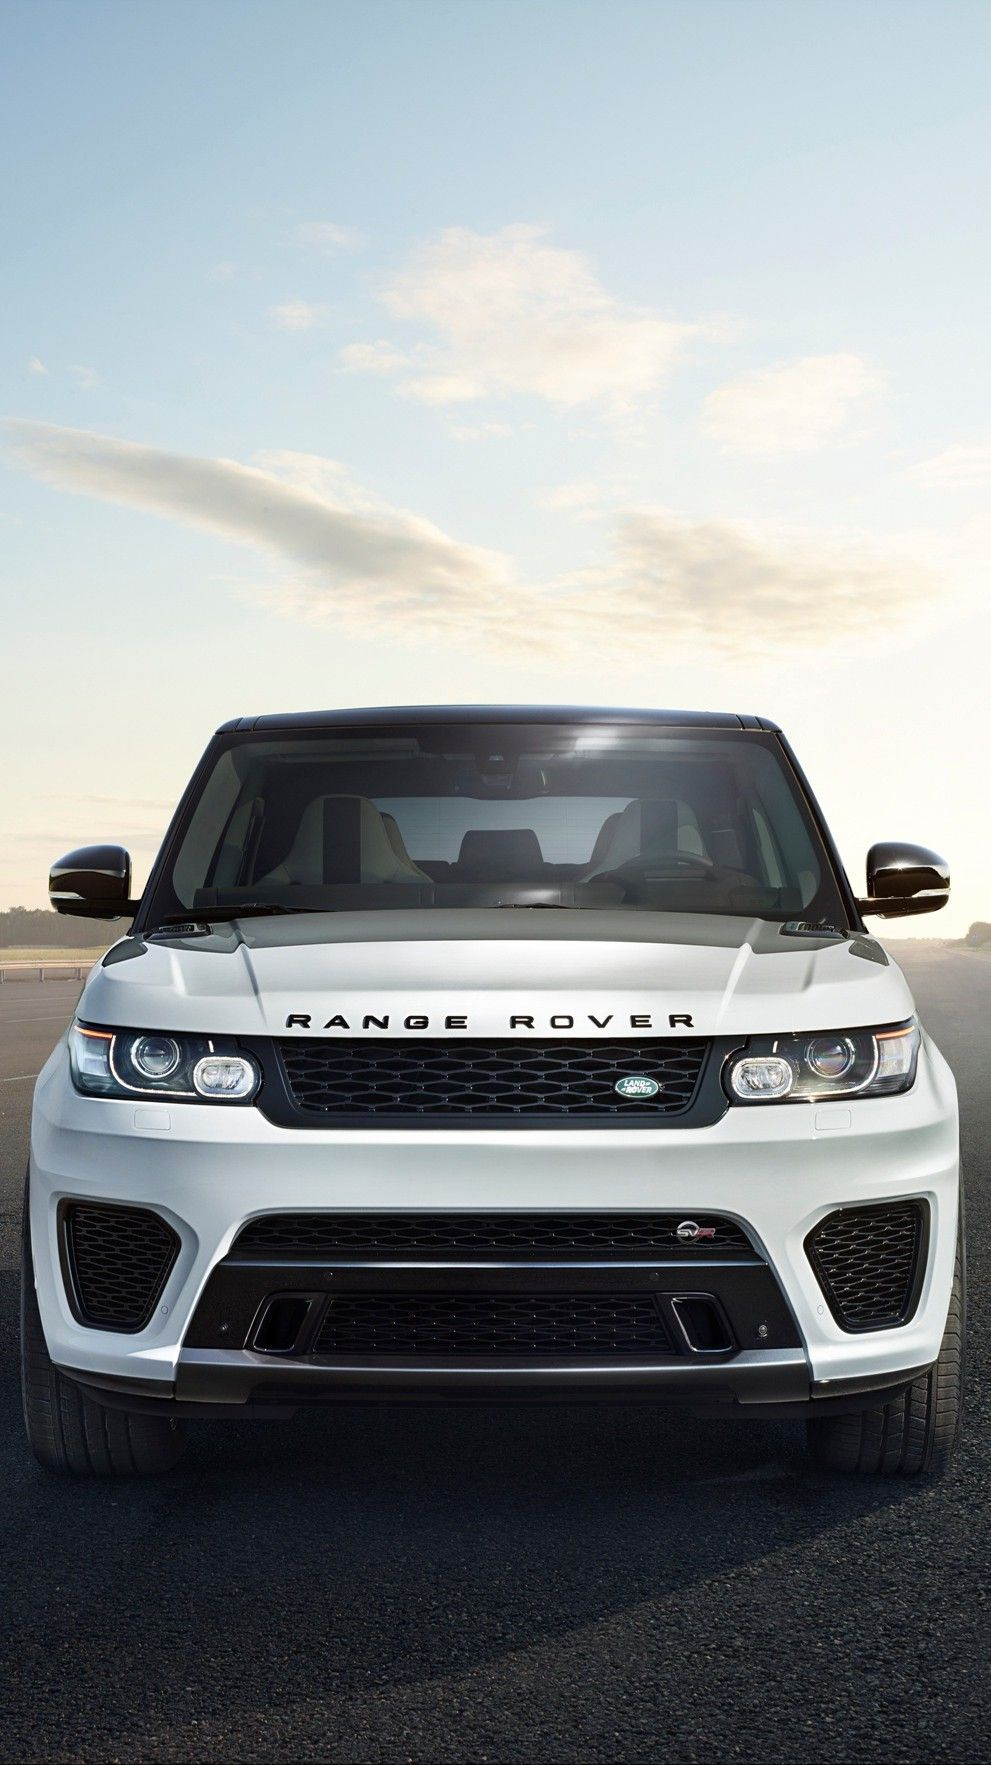 Range Rover Sport Svr Iphone Wallpaper Things For My Wall Cars